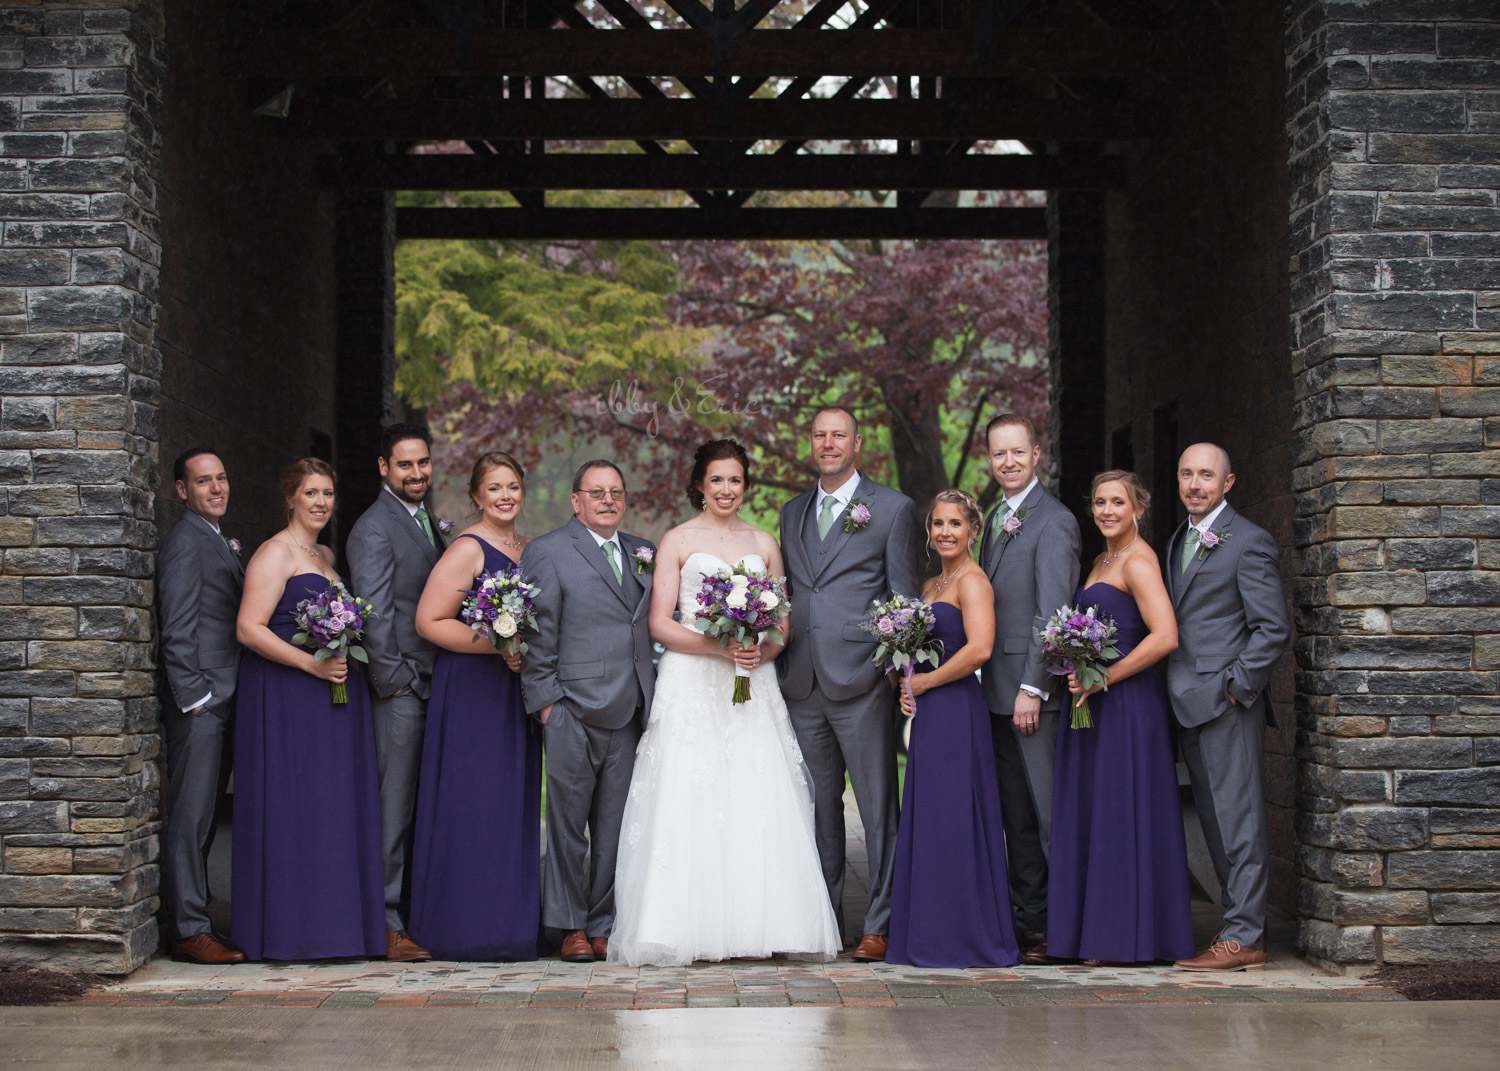 Purple and gray wedding party on a rainy day.